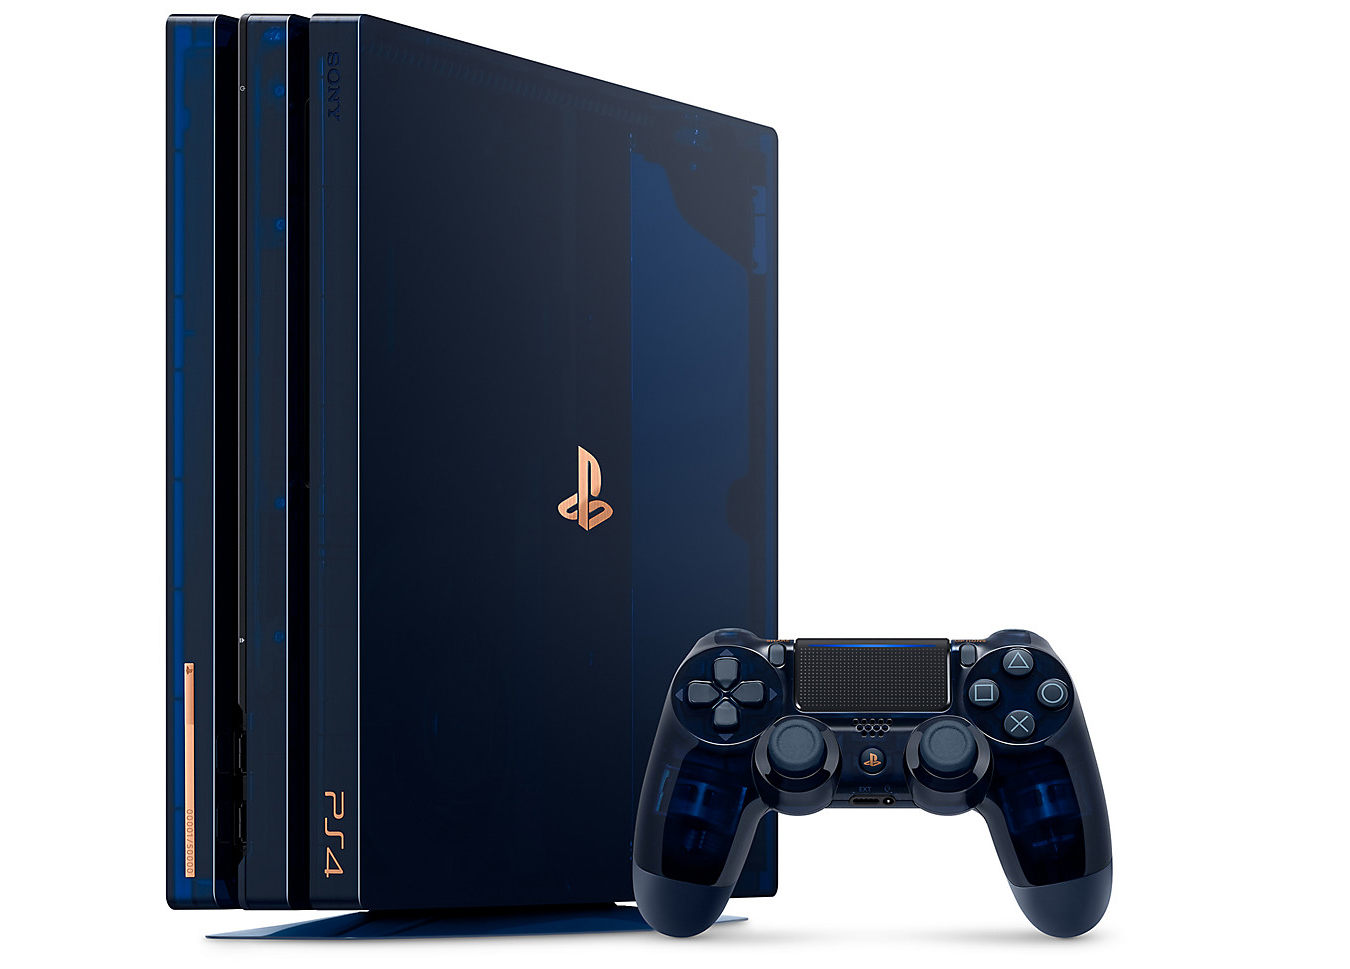 There will only be 50,000 LE PS4 Pro models on sale so fans will have to be quick about the orders